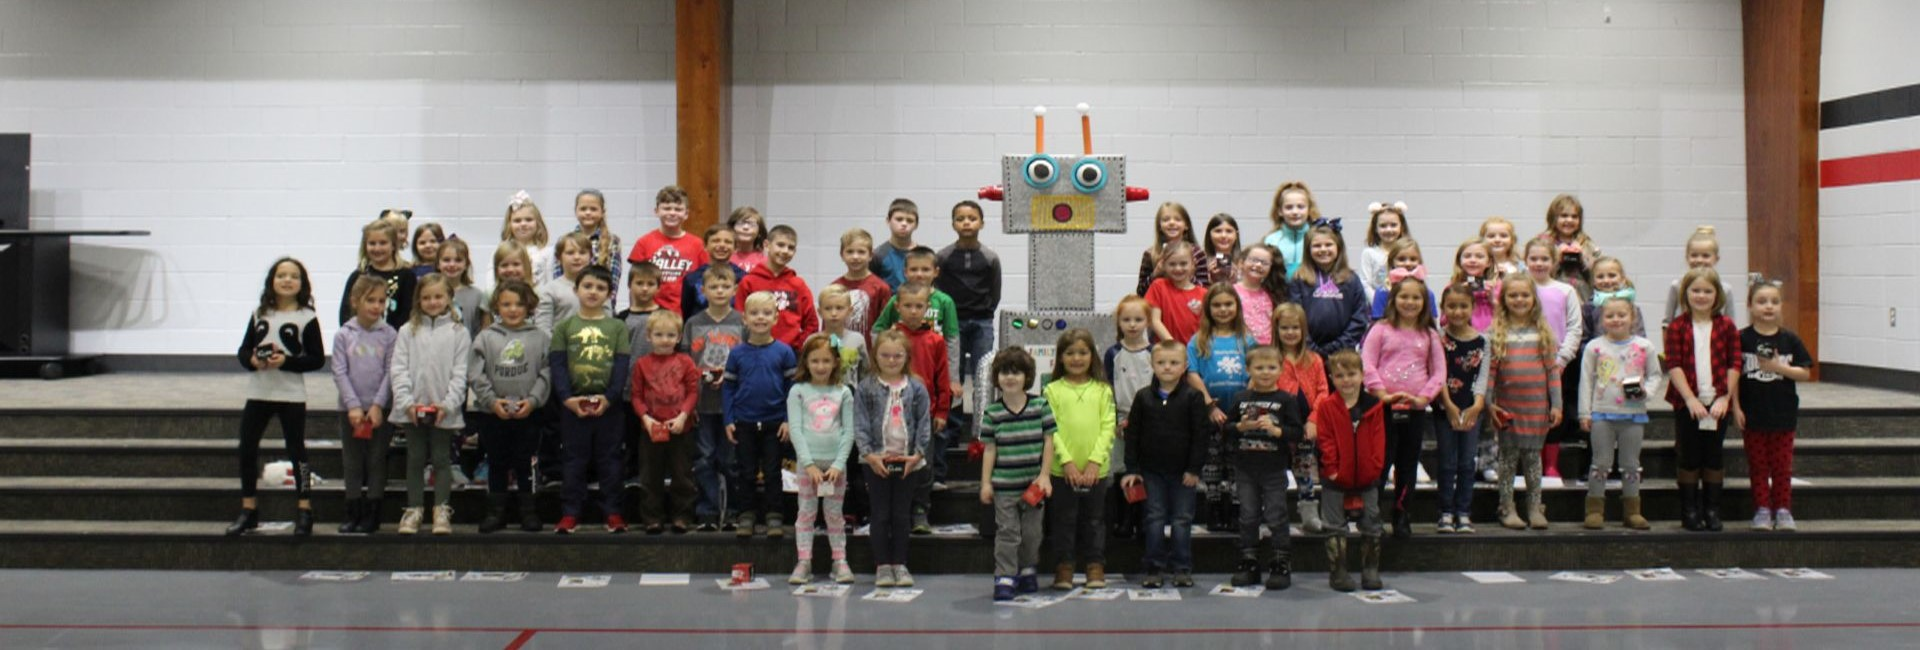 2019 WES Science Fair Participants